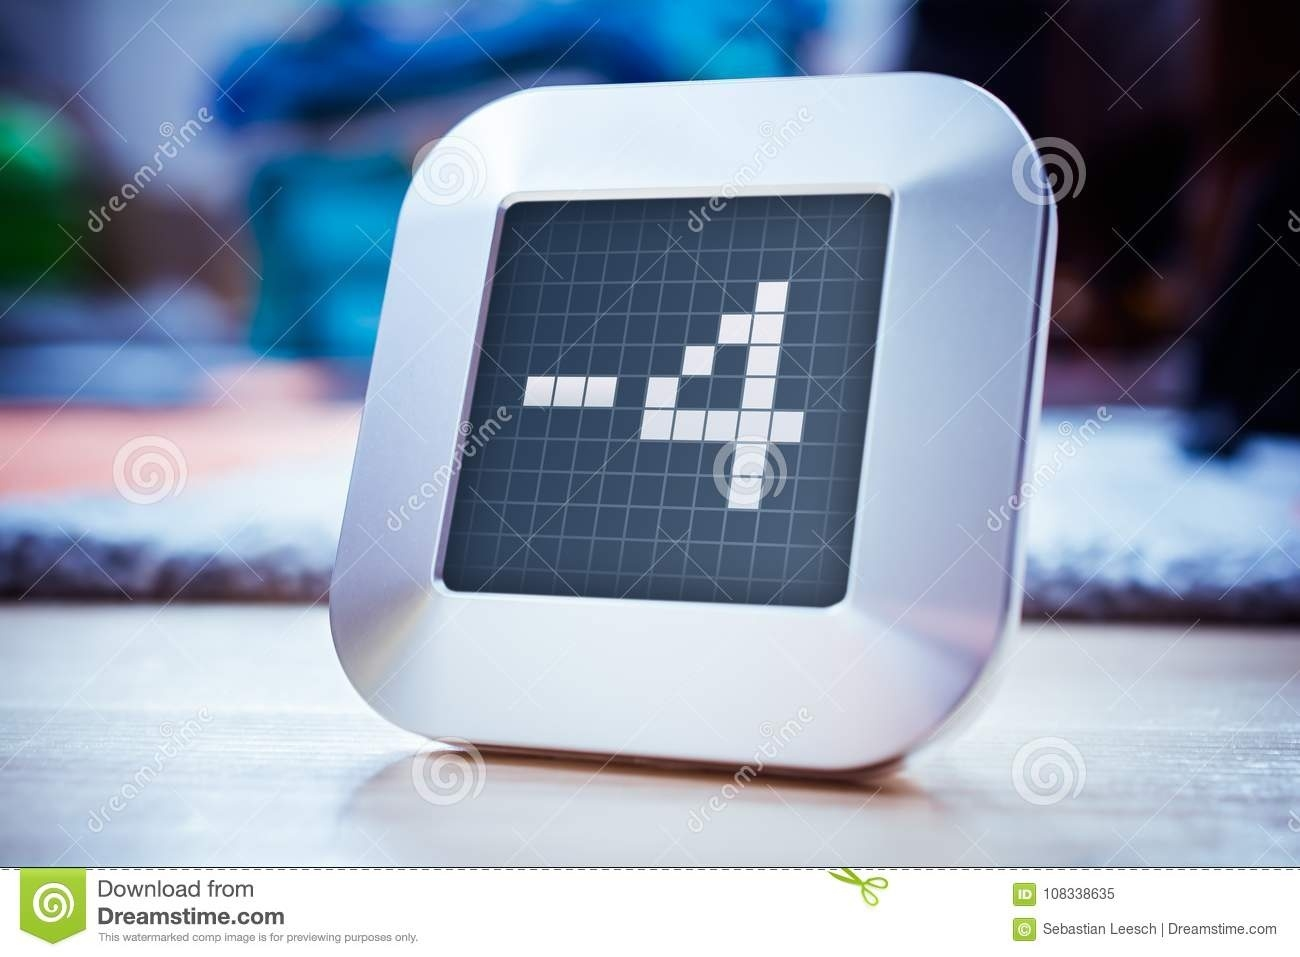 The Number -4 On A Digital Calendar, Thermostat Or Timer Stock Image_Calendar And Countdown Chrome